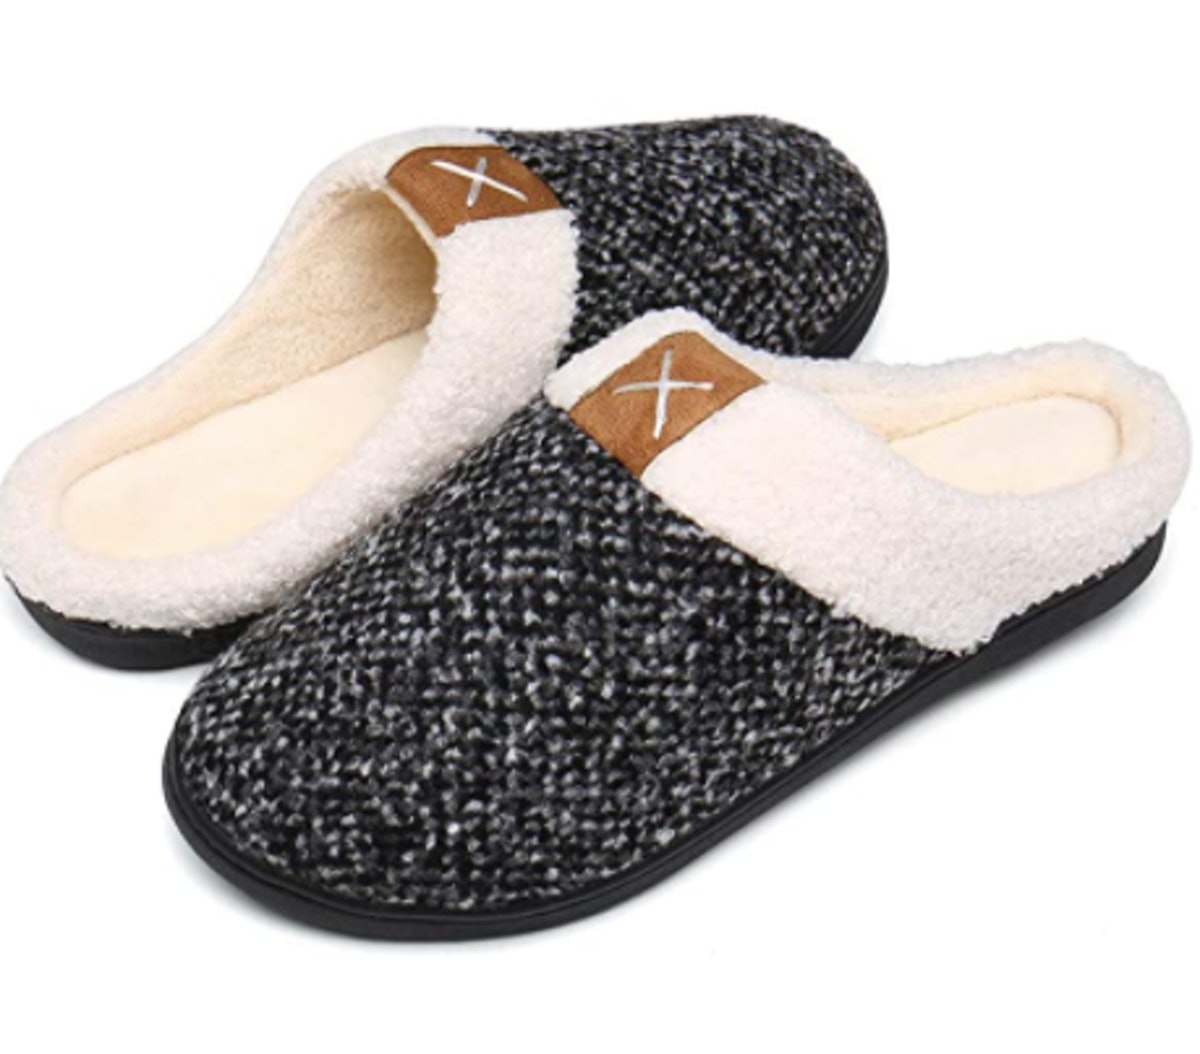 UBFEN Womens Mens Slippers Memory Foam Comfort Fuzzy Plush Lining Slip On House Shoes Indoor Outdoor